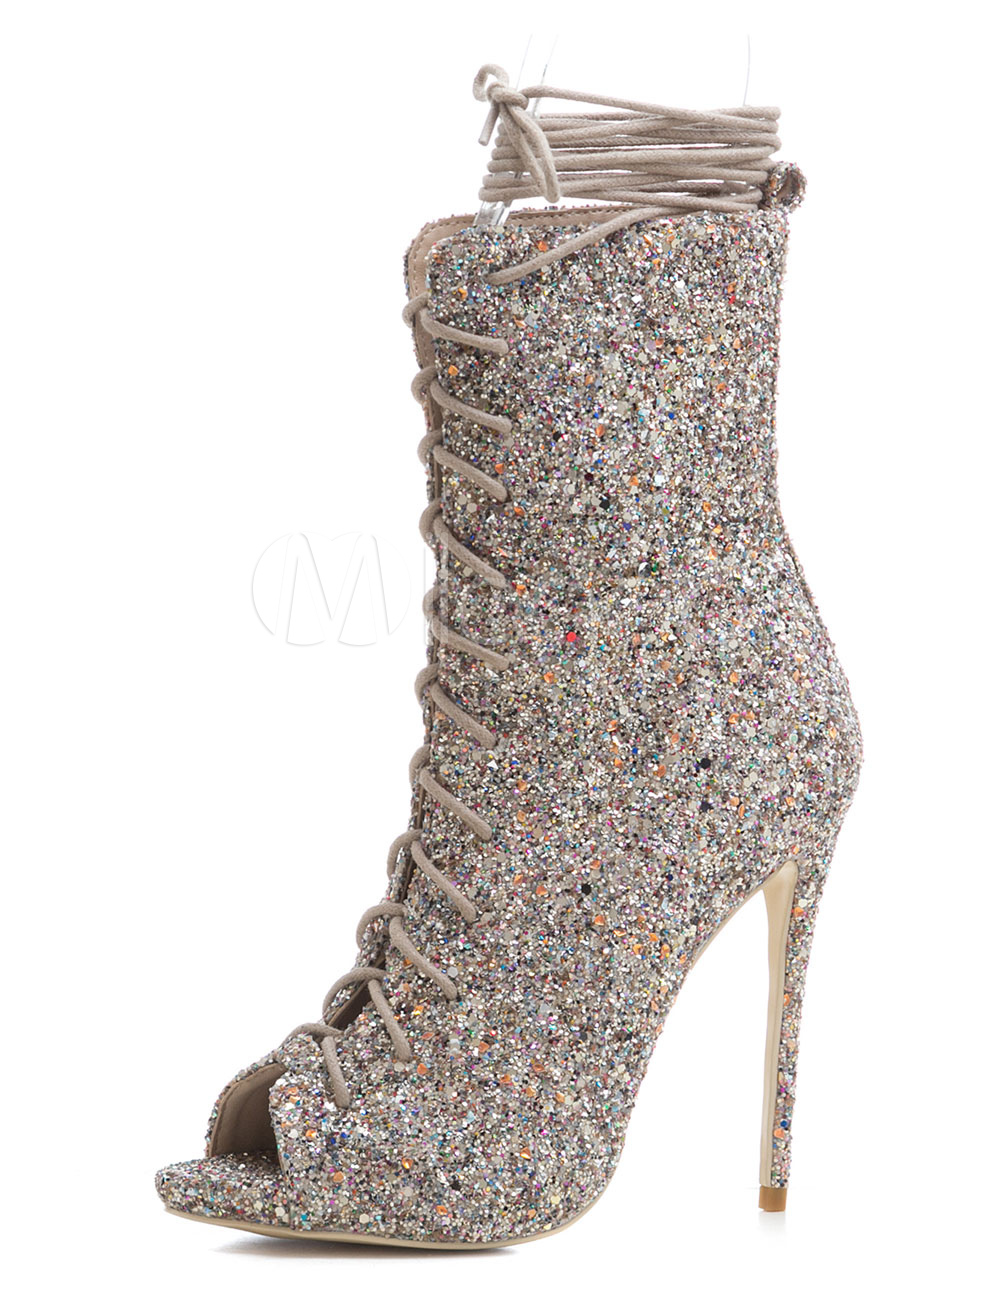 Silver Sandal Boots Women High Heels Peep Toe Lace Up Sexy Sandals